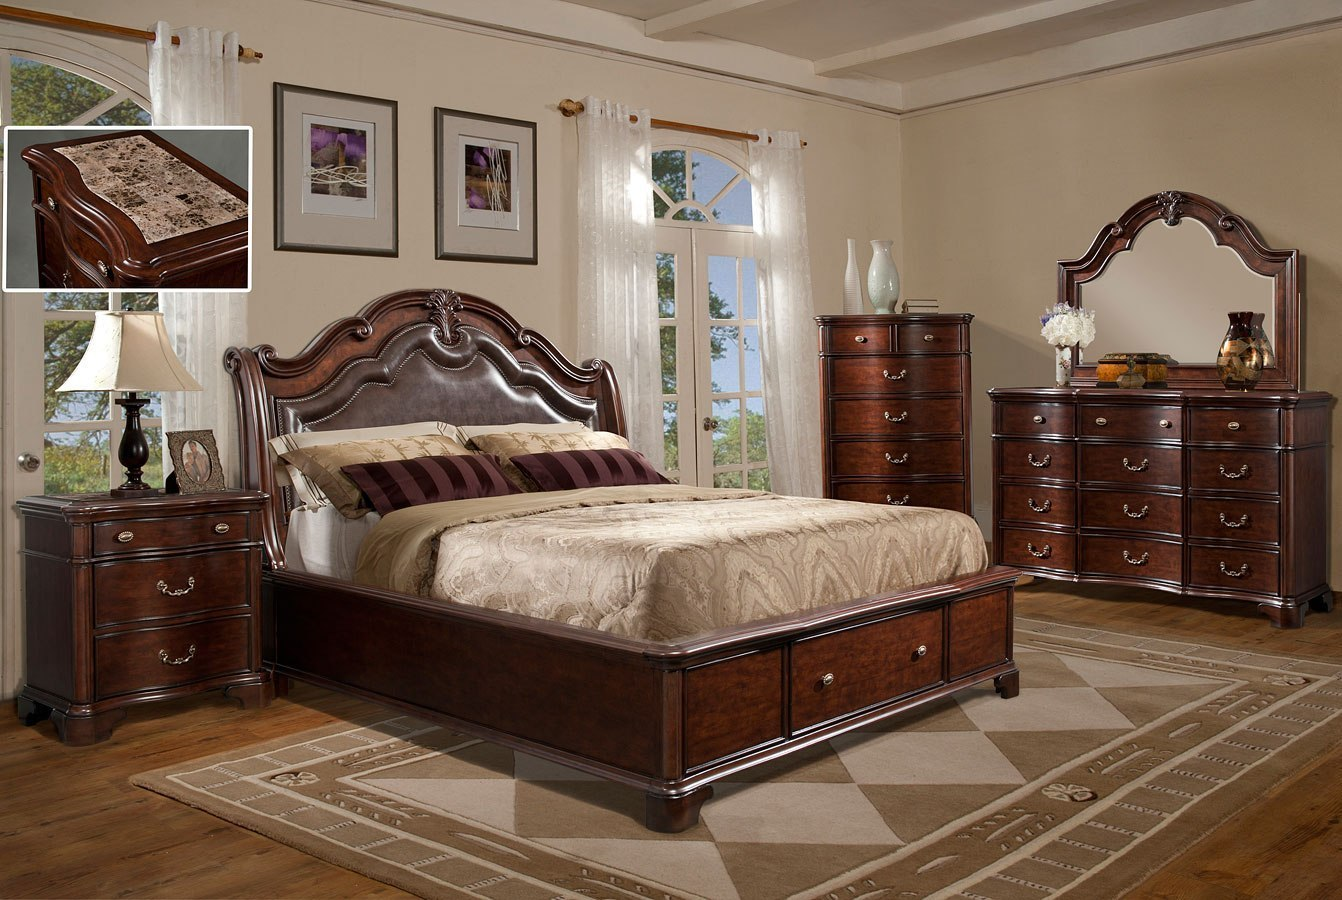 Tabasco Storage Bedroom Set Elements Furniture